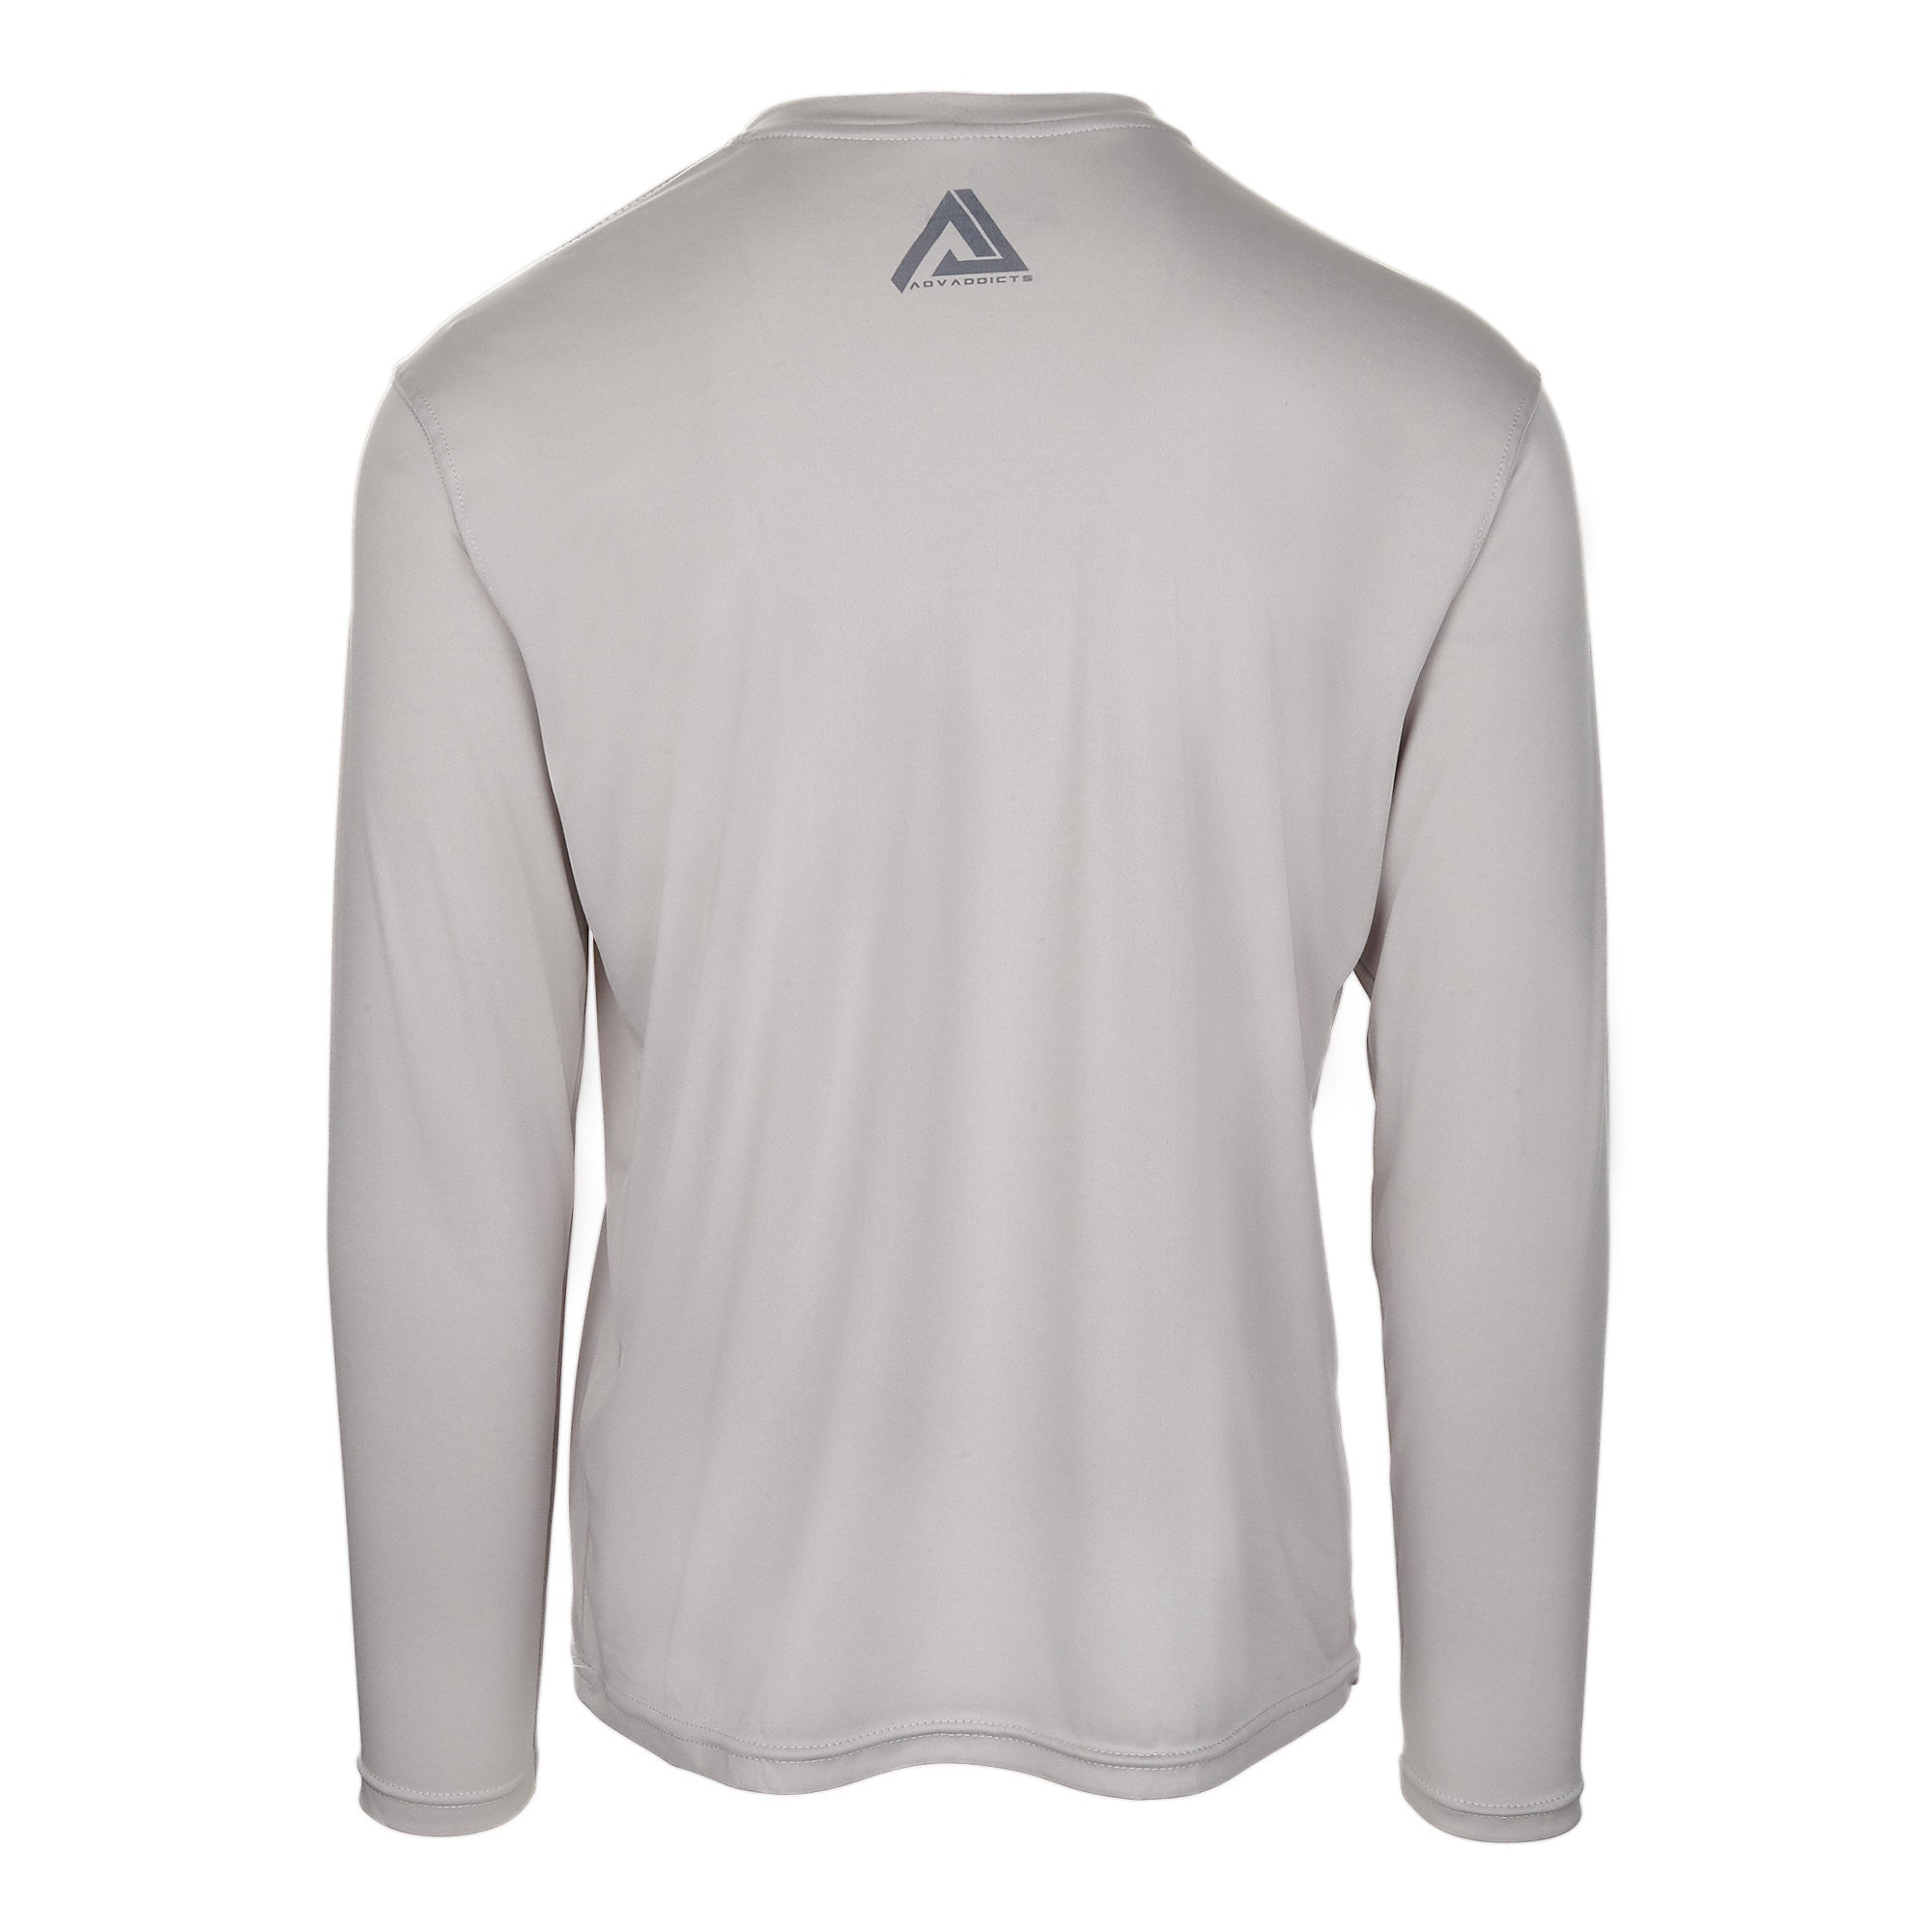 X-REFLECT 1.0 PERFORMANCE TEE LONG SLEEVE GREY